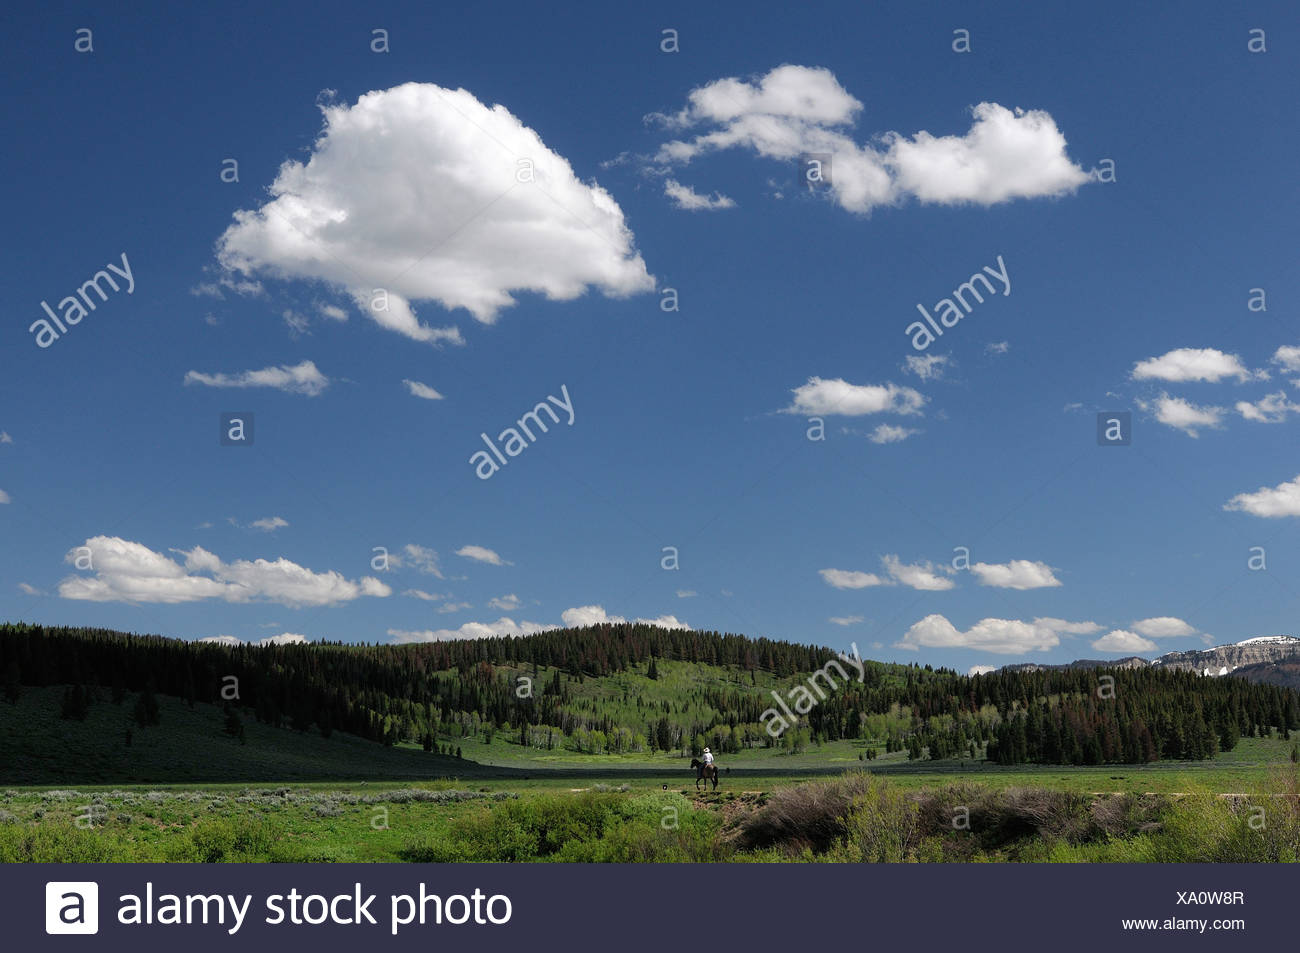 Guest's Horseback riding Flying A Ranch Guest Ranch Bondurant Wyoming USA hills forest - Stock Image